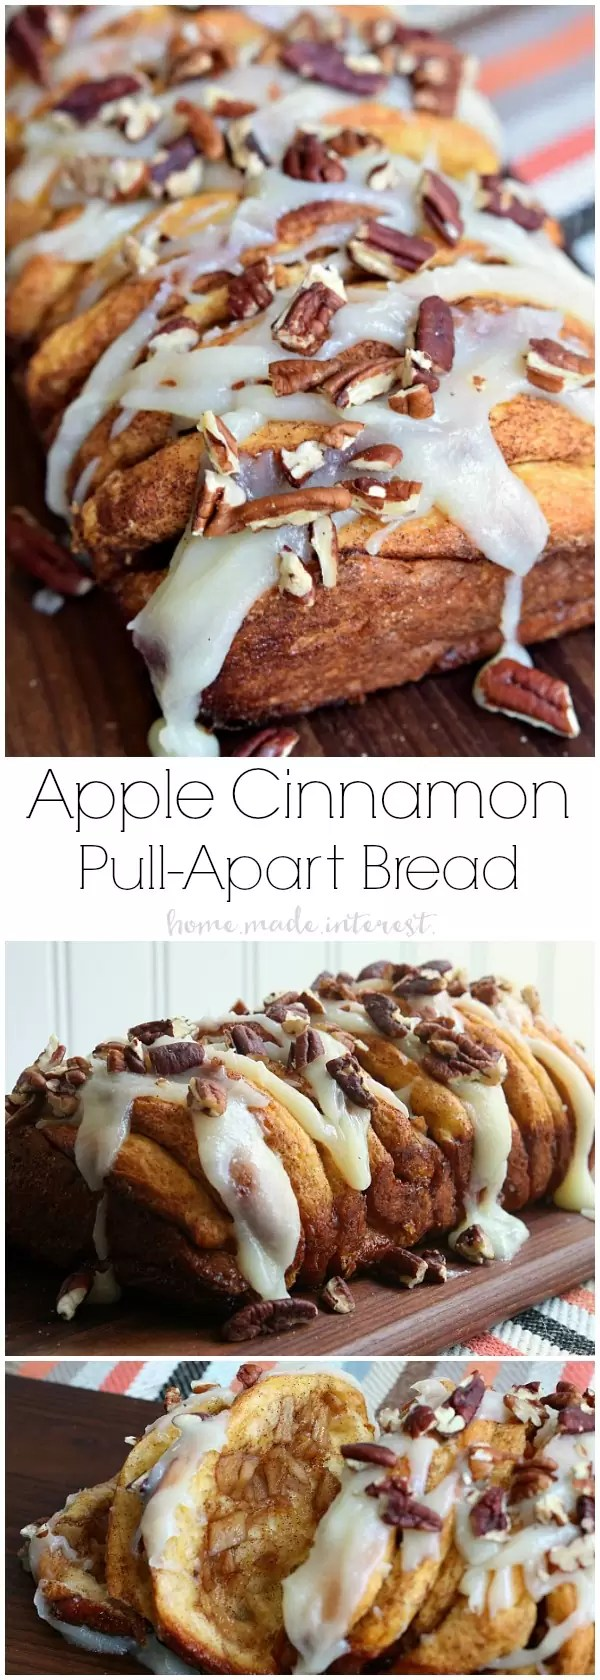 This apple cinnamon pull apart bread recipe is made extra easy because it uses canned biscuits. The biscuit dough is layered with apples, cinnamon, and sugar and baked until the flavors meld together into a sweet, spiced bread. This apple recipe is perfect for fall. Drizzle it with a cream cheese glaze and you have an easy fall dessert recipe that no one will be able to resist!